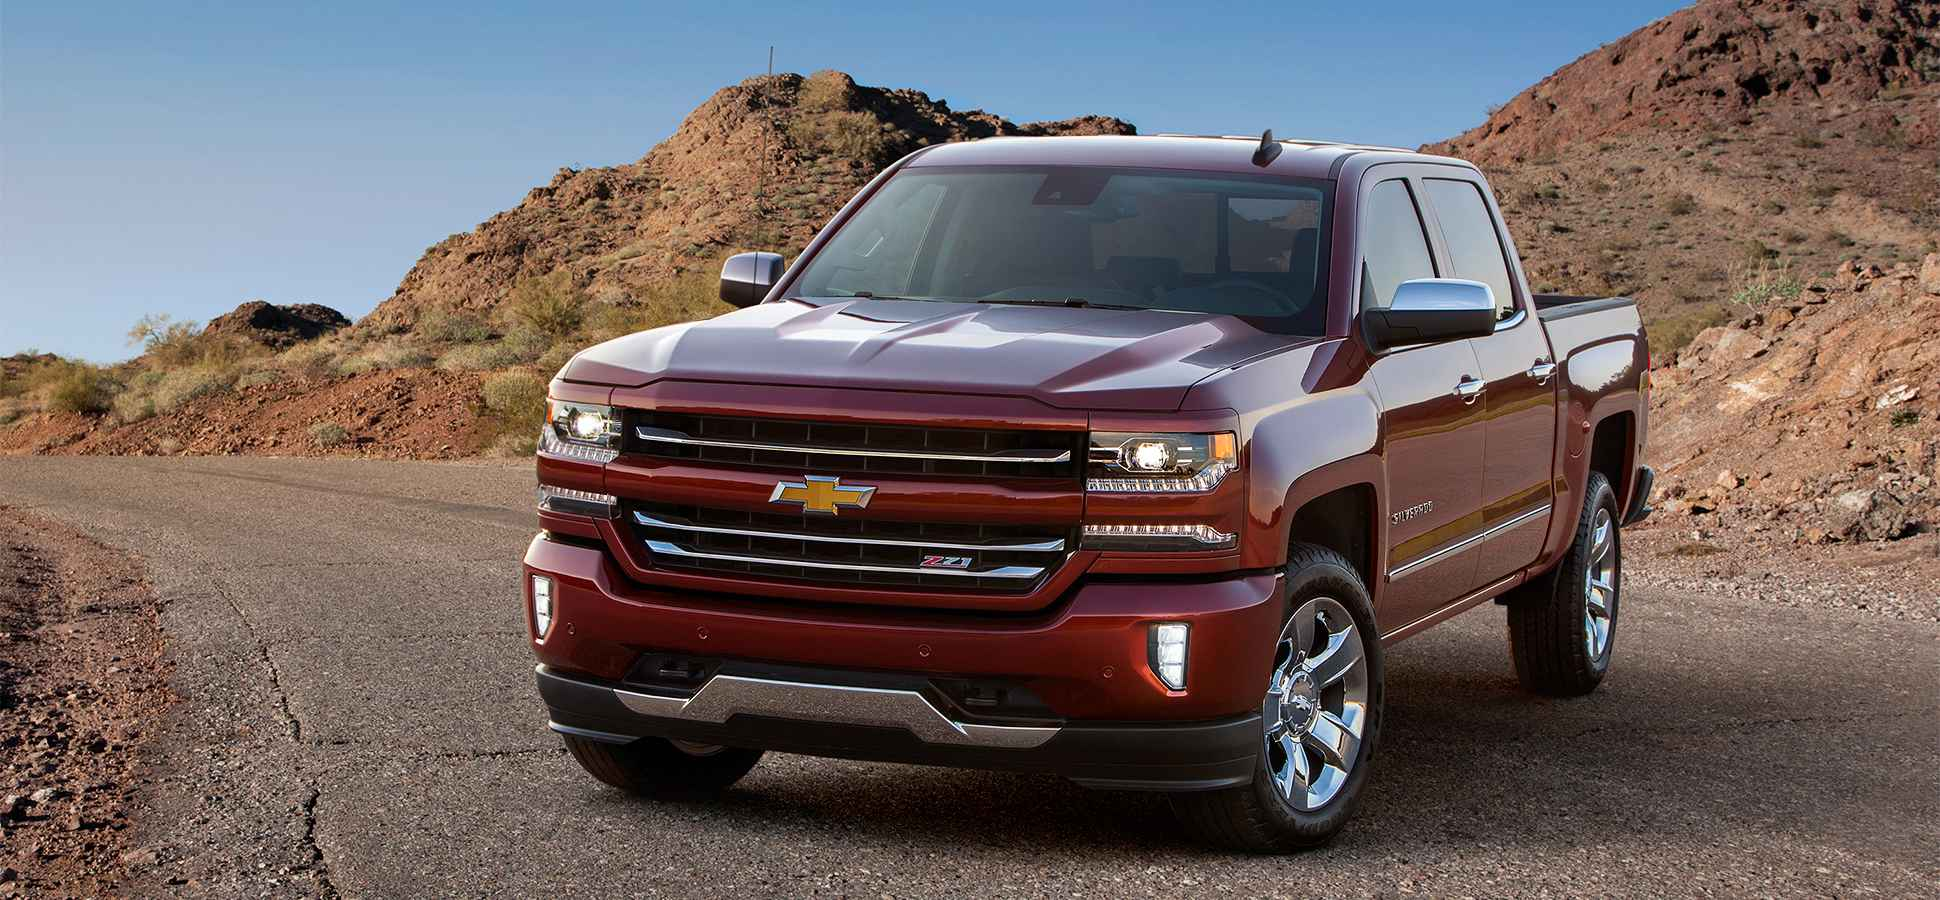 hight resolution of the 60 000 chevy silverado because you never know when you ll need a luxury car that can haul a team of horses up a mountain inc com